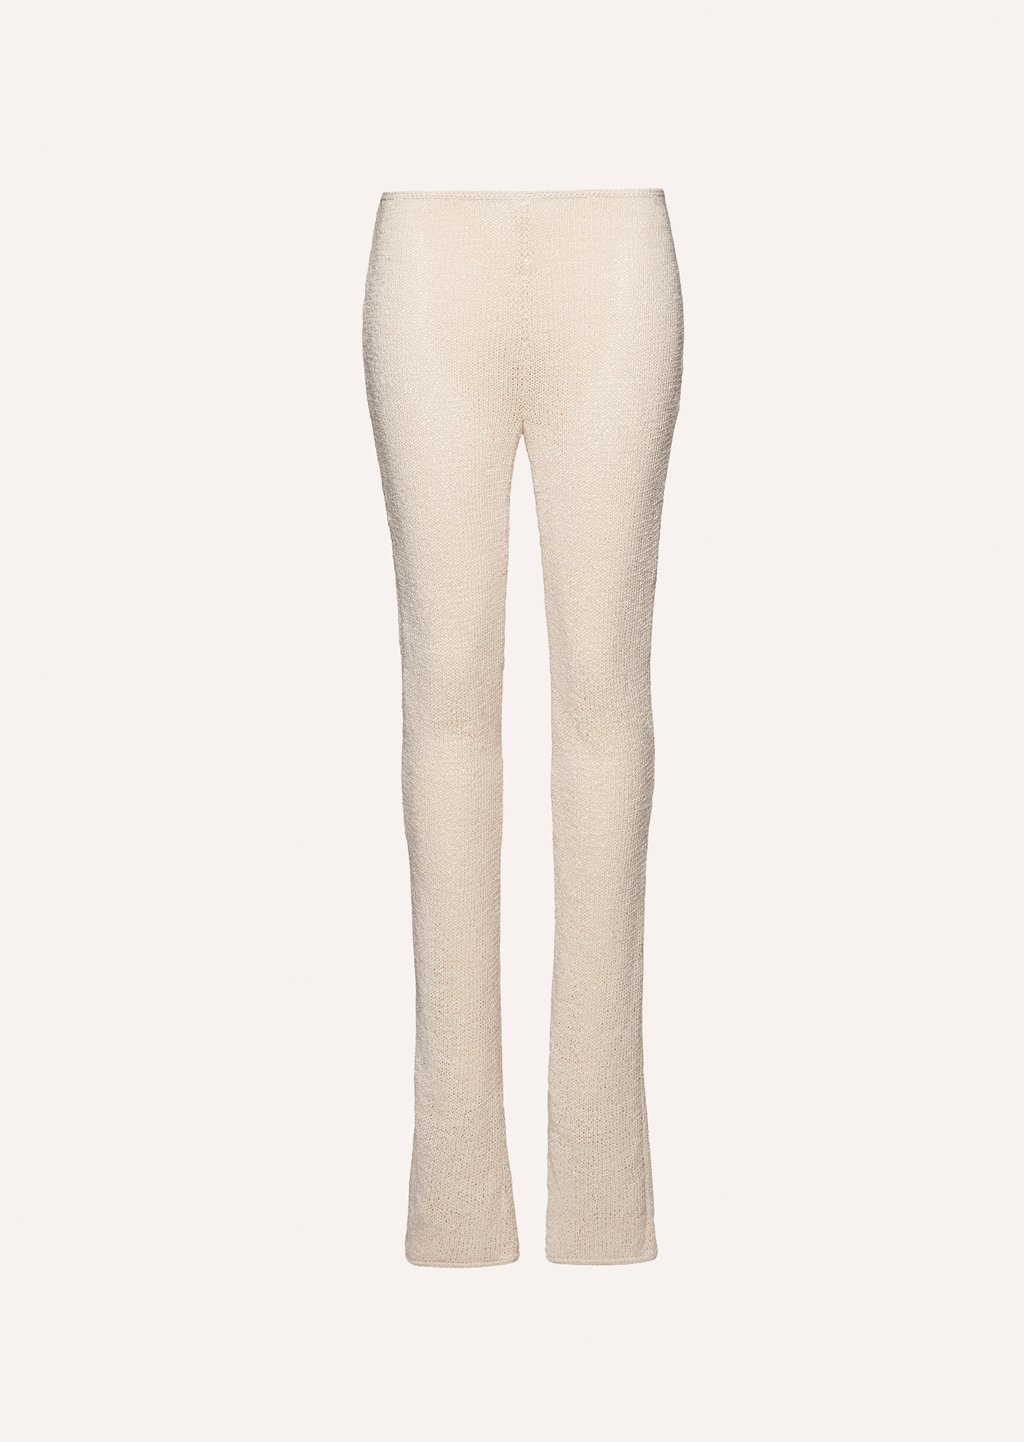 Crochet pants in cream by Magda Butrym, available on magdabutrym.com for $1820 Kylie Jenner Pants Exact Product